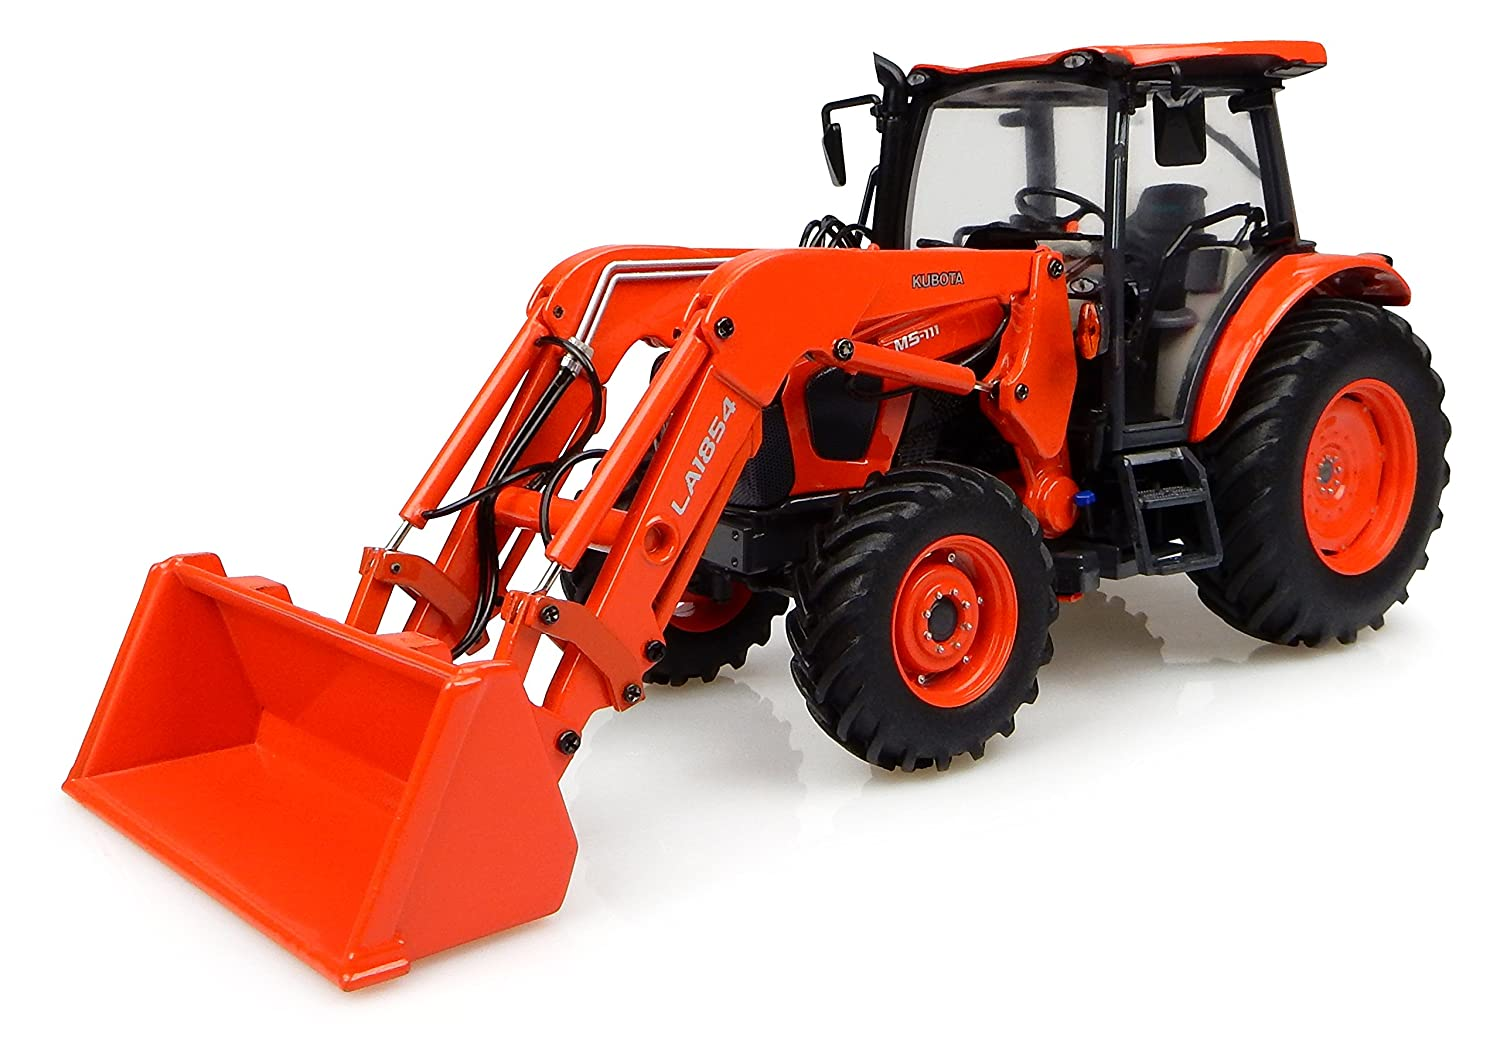 Kubota 1:32 M5-111 Tractor with Front Loader Universal Hobbies UH4924